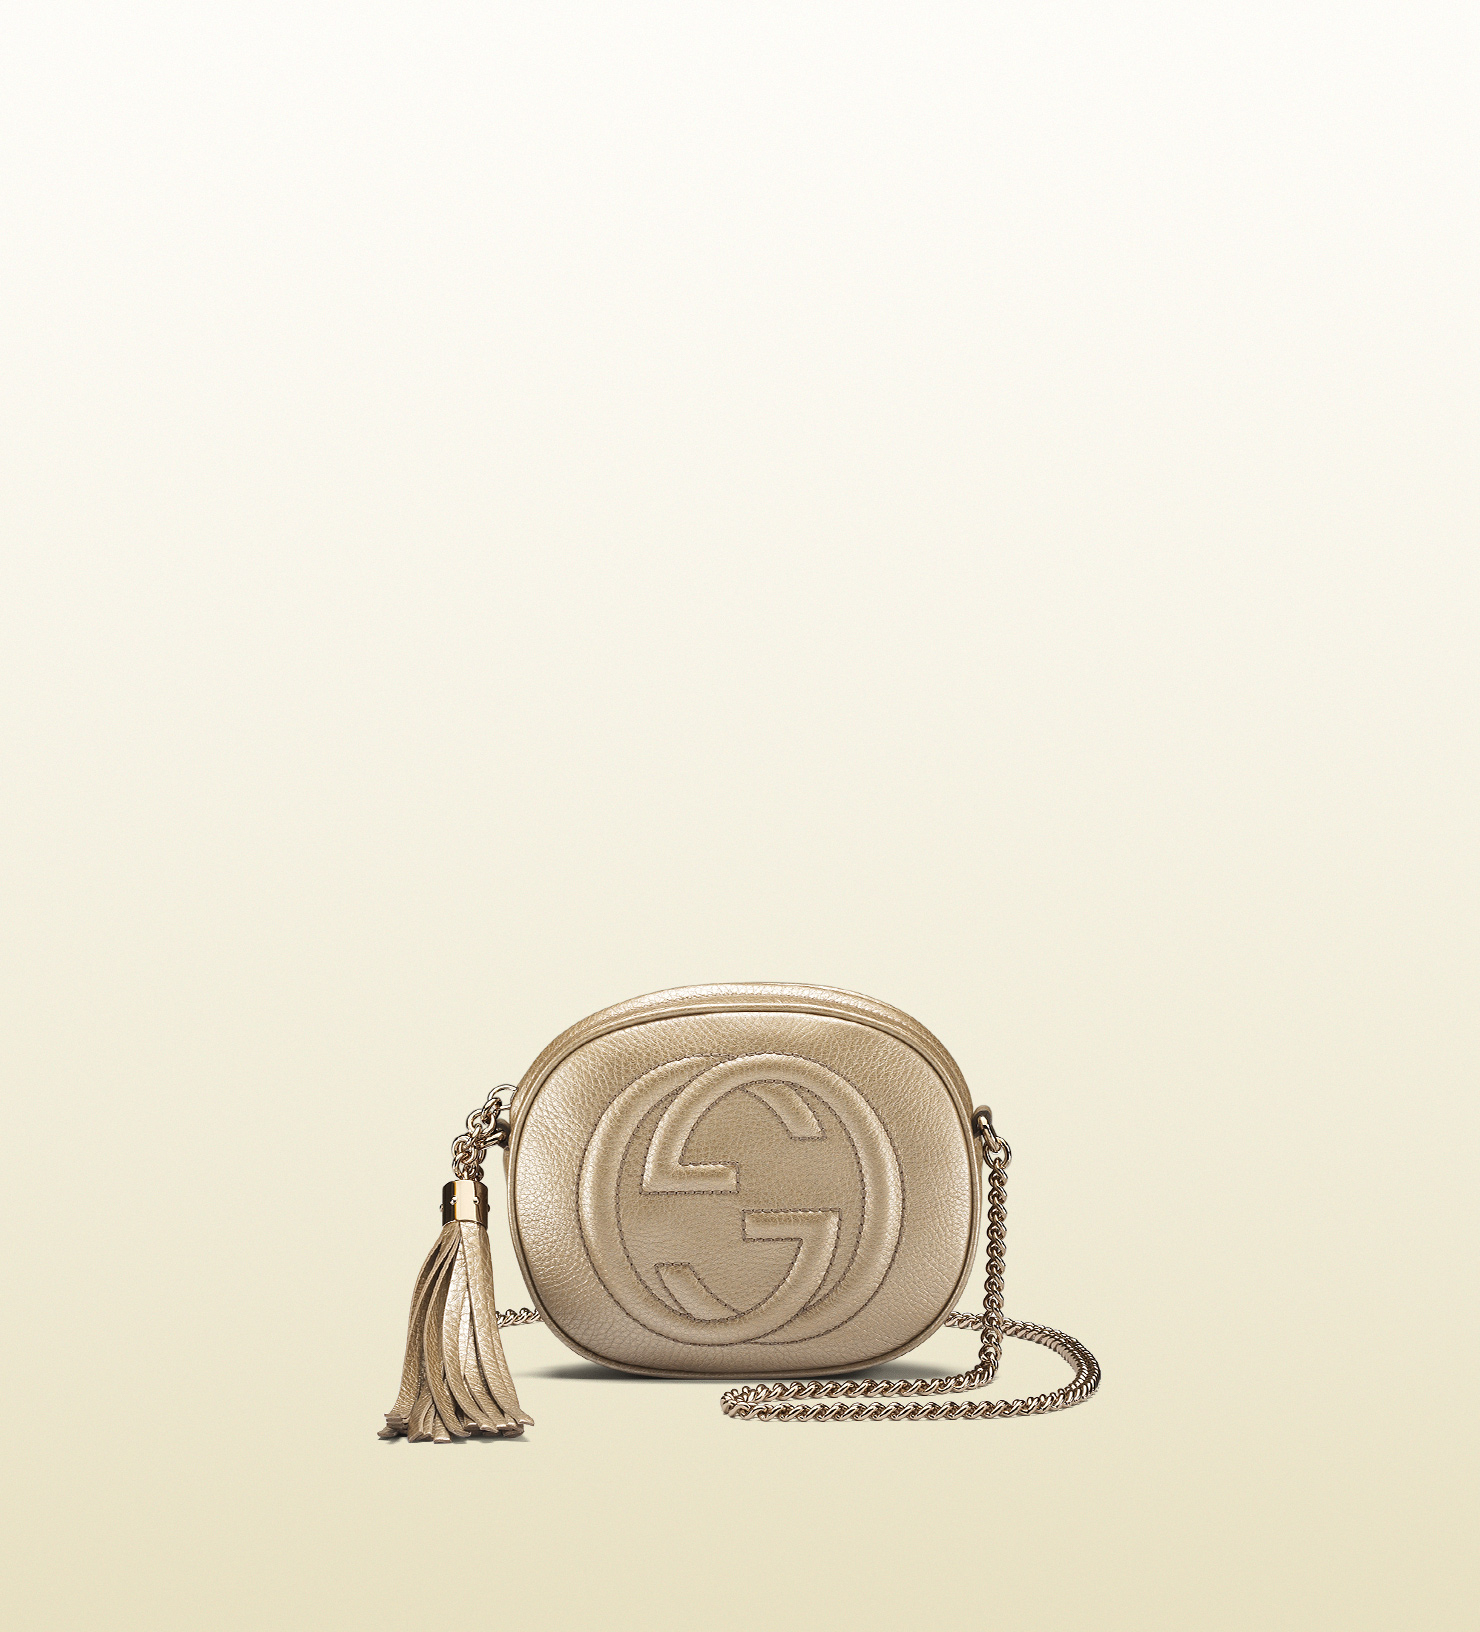 e541d785c003 Lyst - Gucci Soho Metallic Leather Mini Chain Bag in Natural